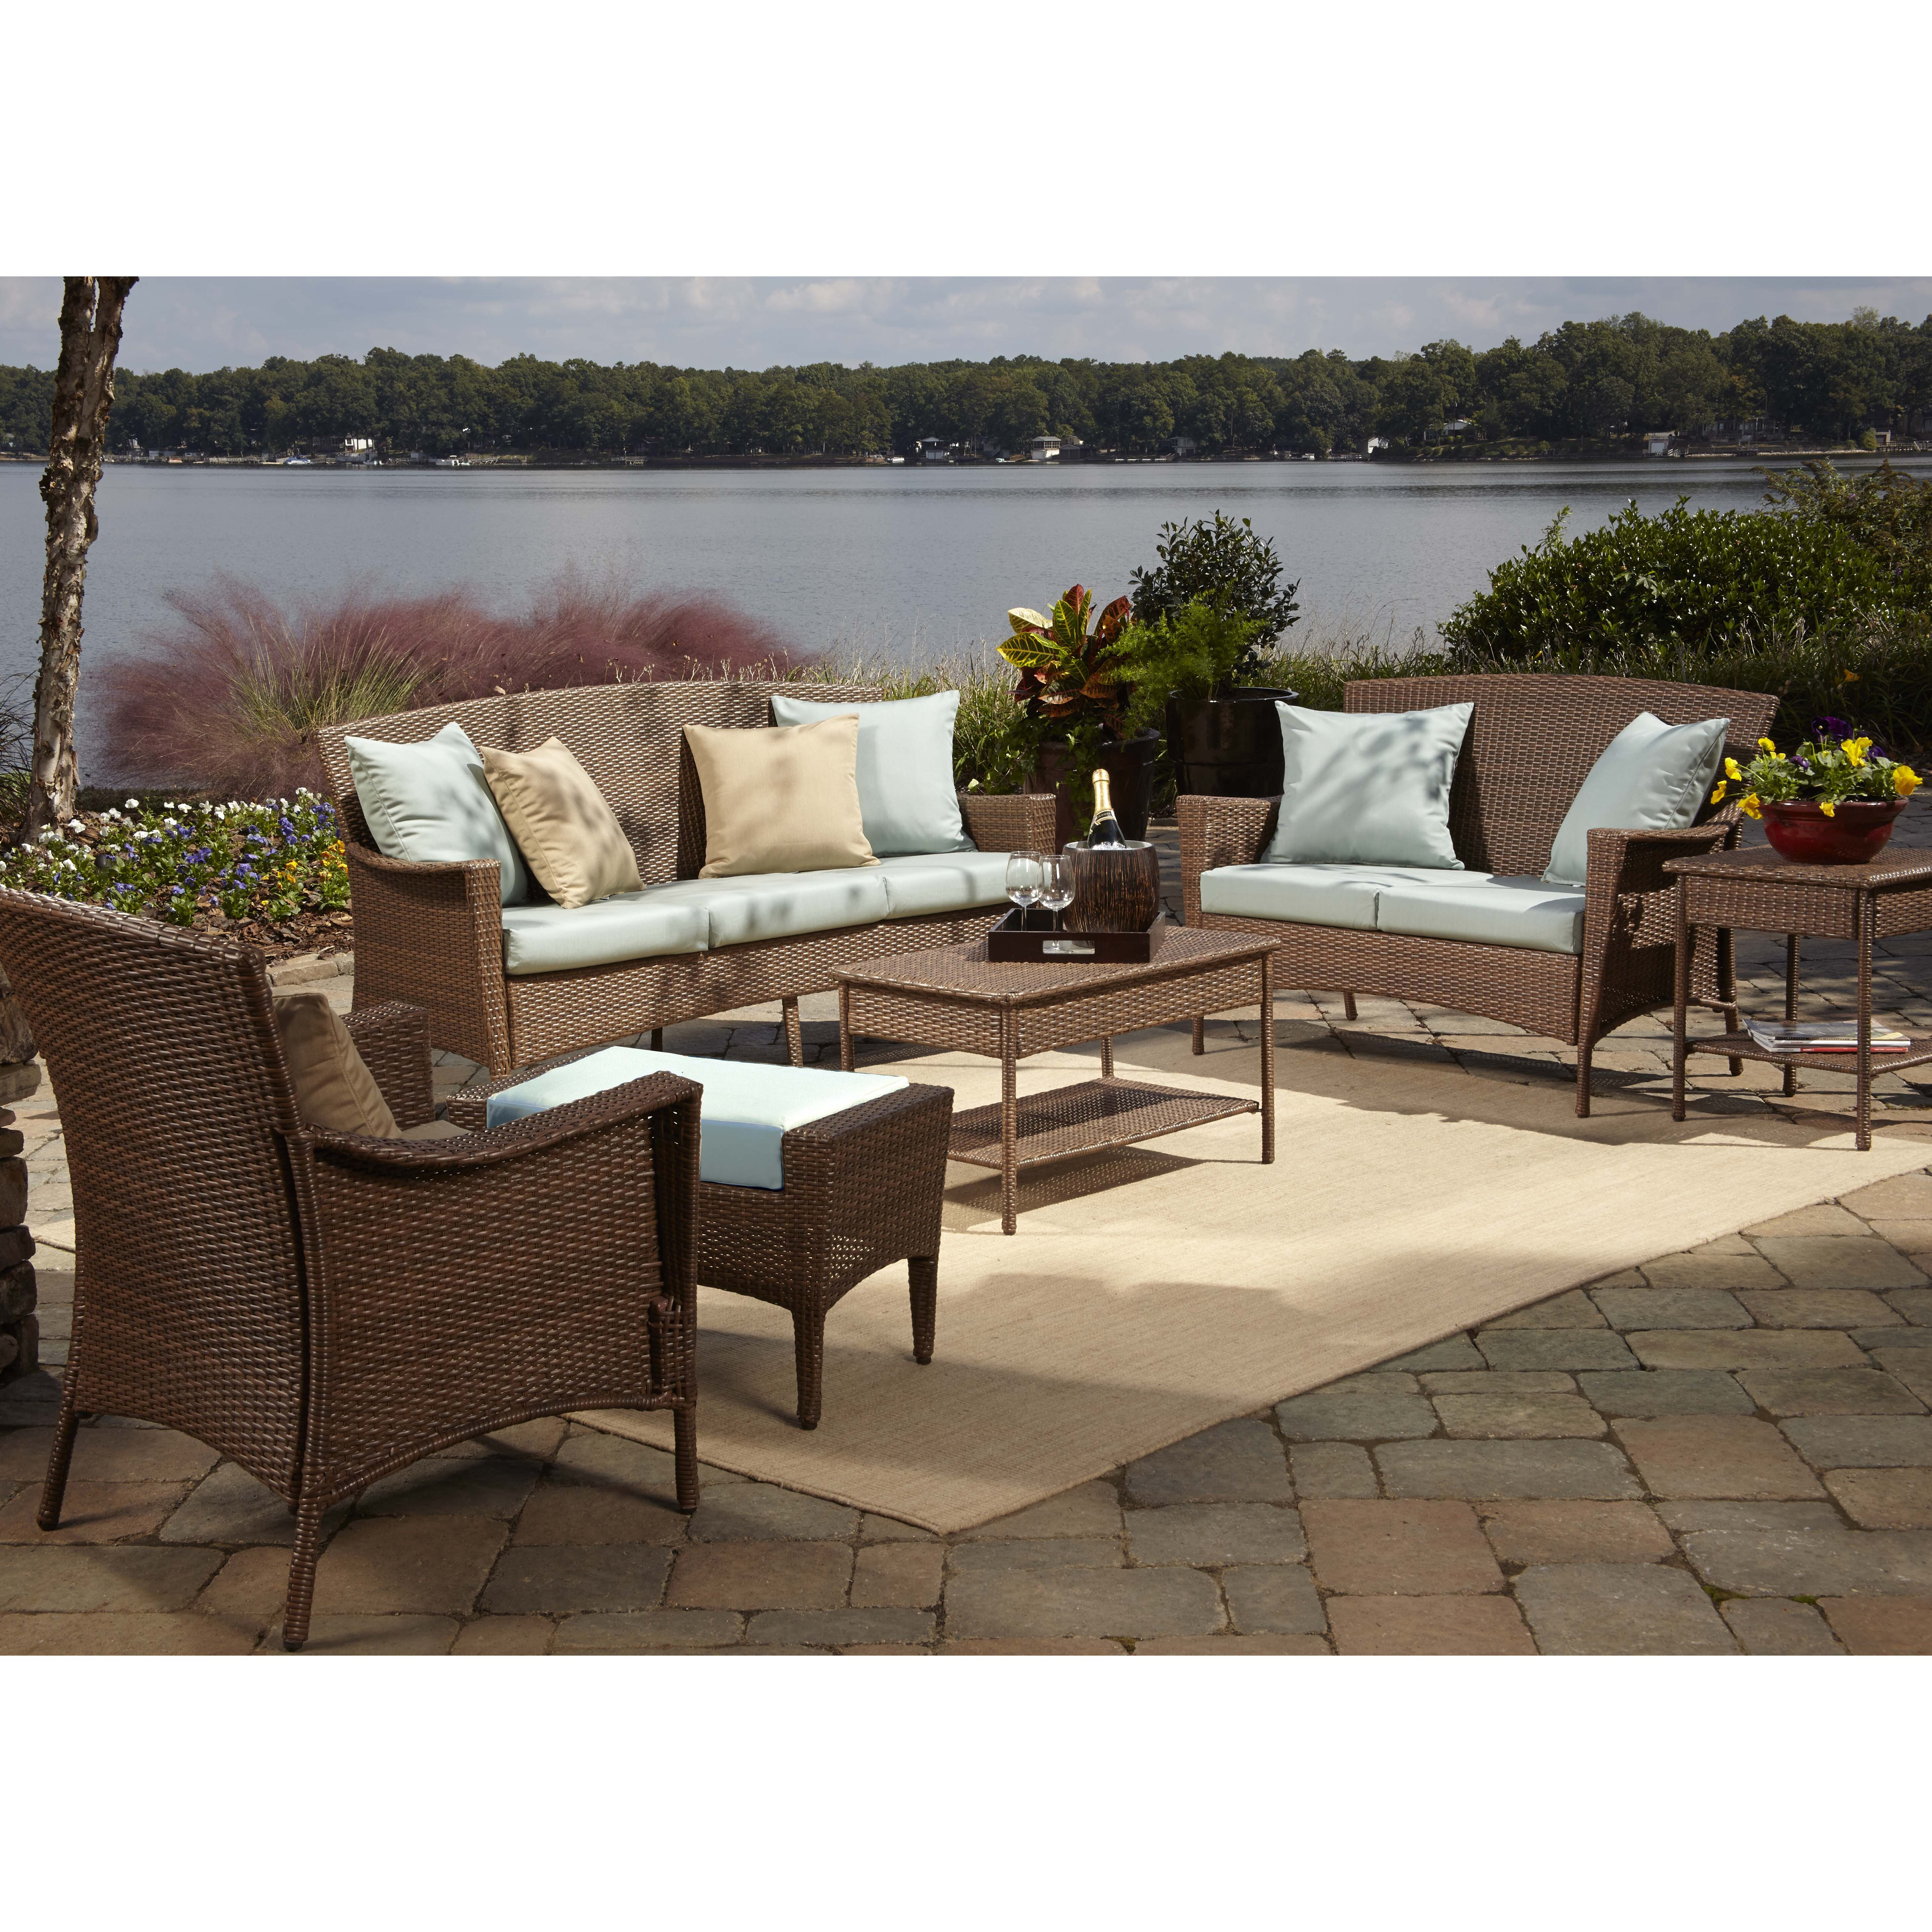 Biscayne Patio Furniture Reviews Home Styles Biscayne Black 7 Swivel Patio Dining Set